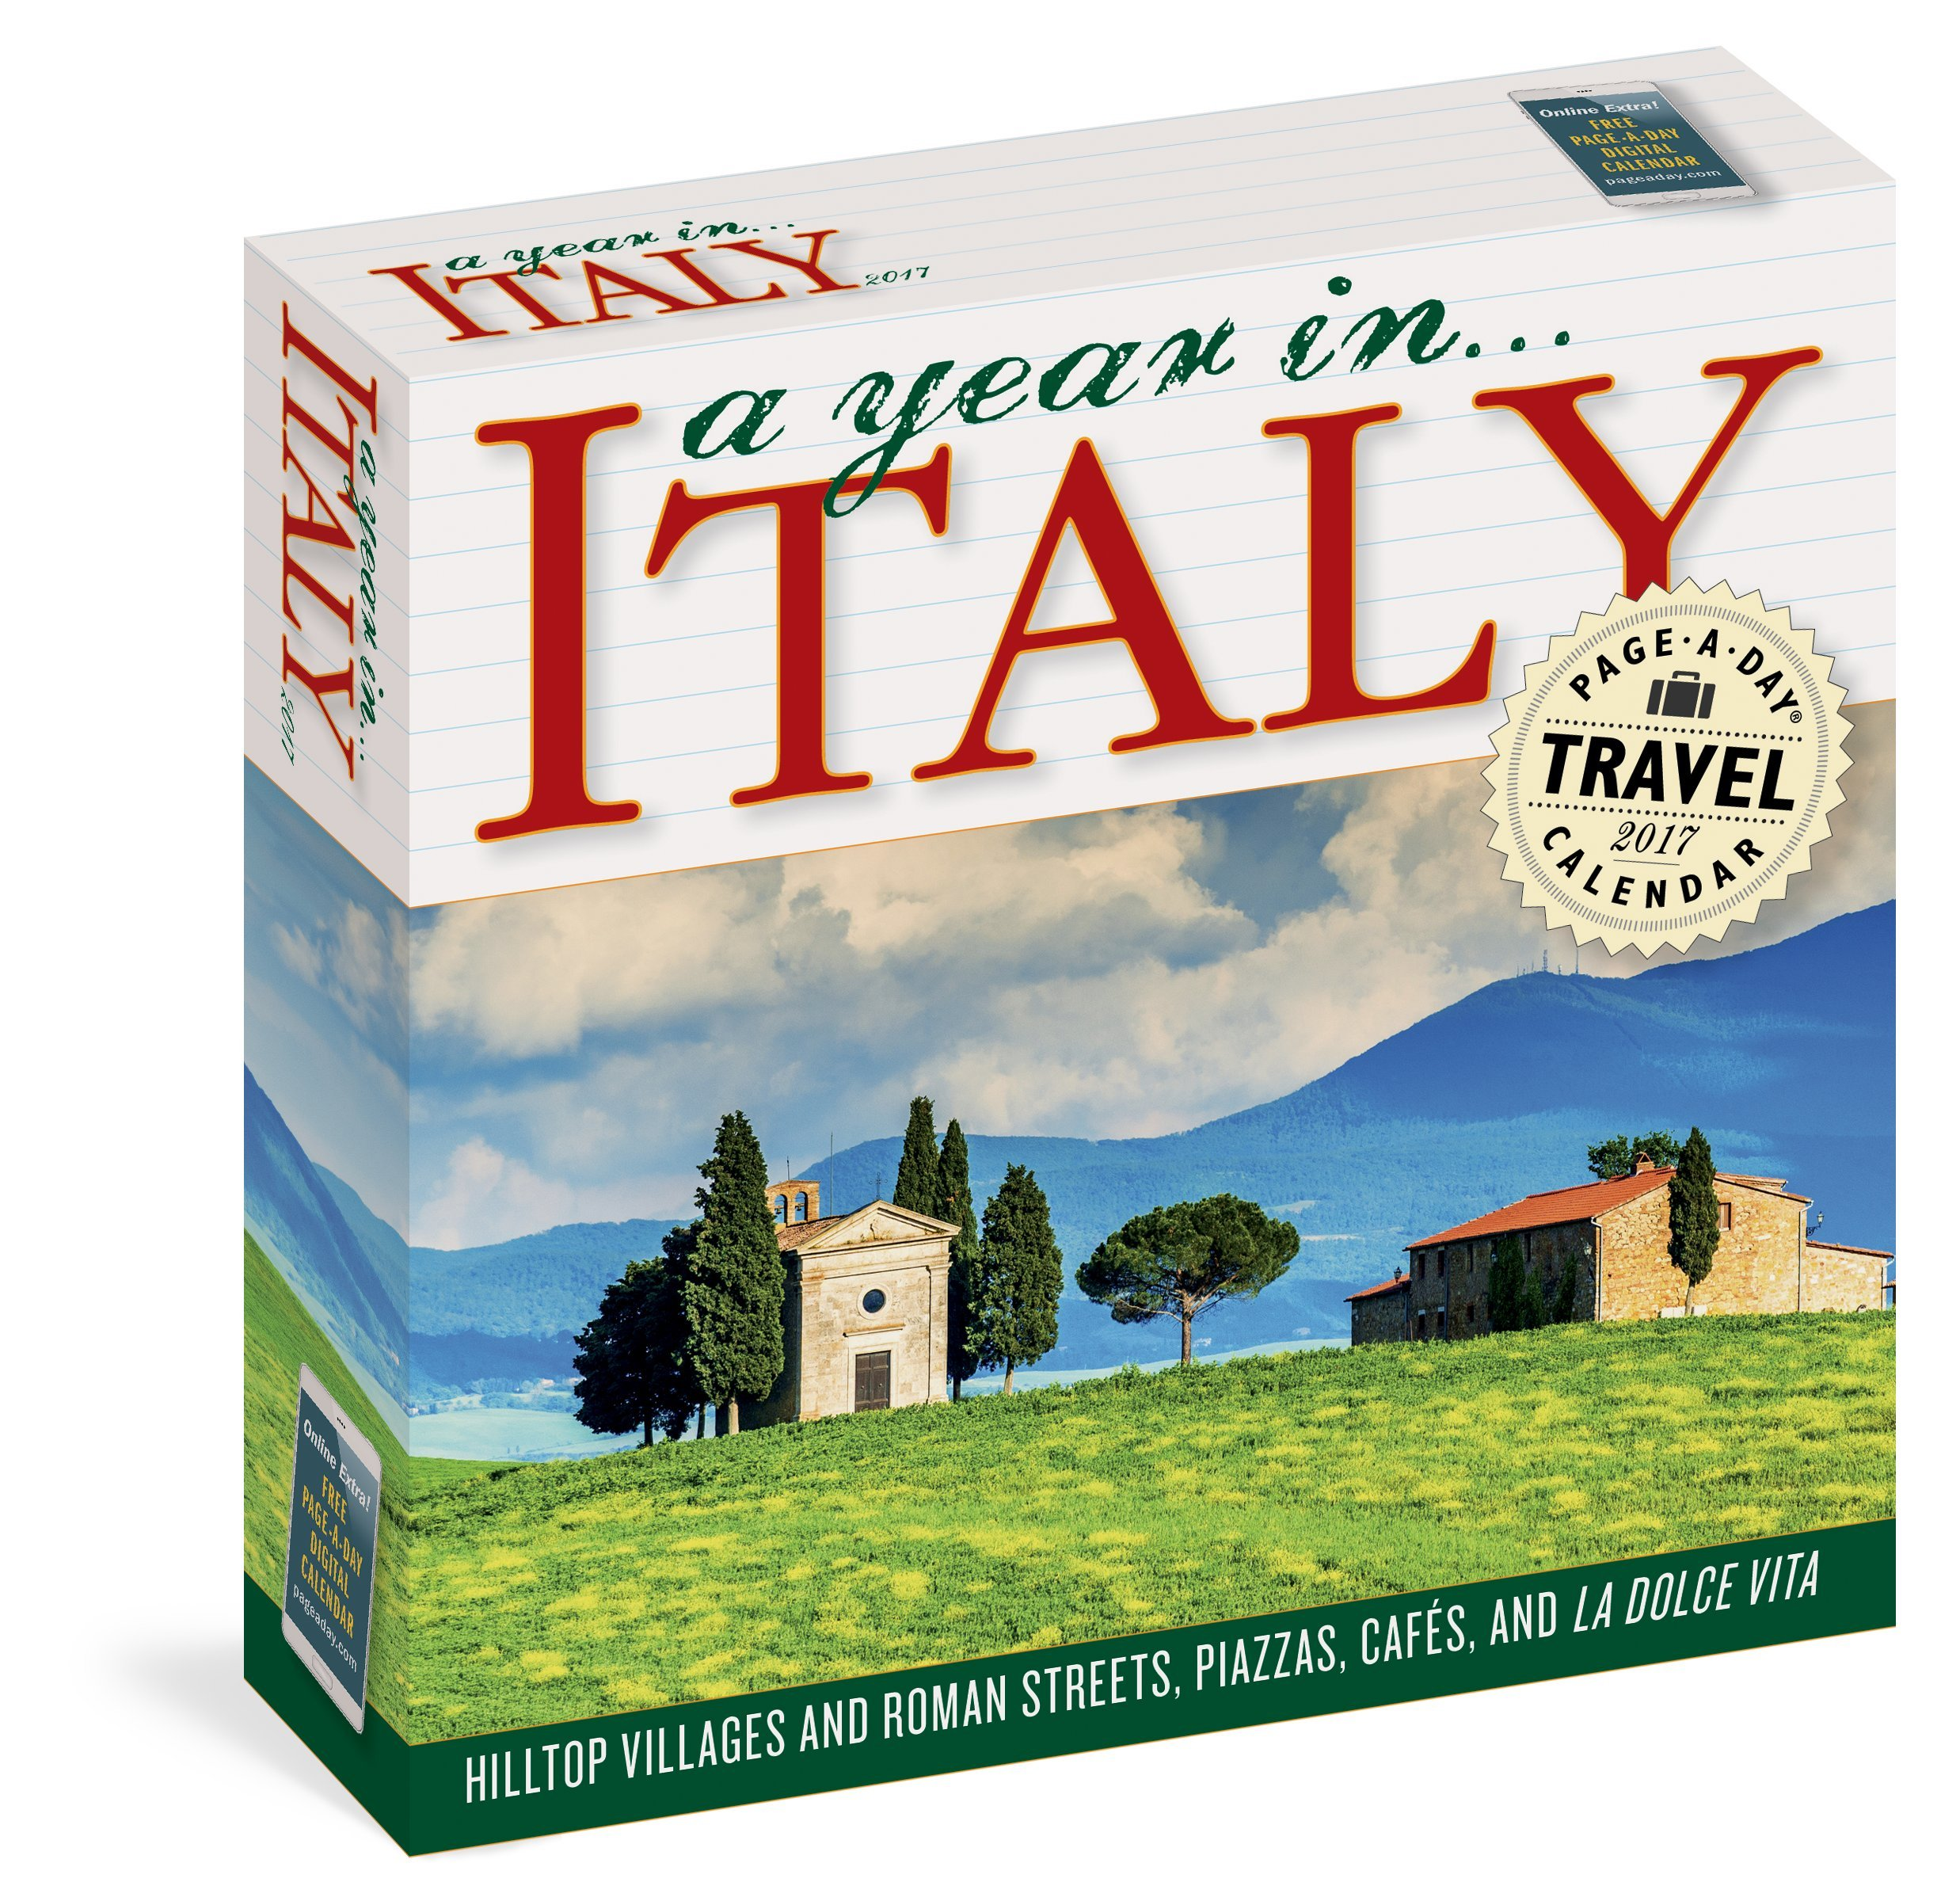 A Year in Italy Page-A-Day Calendar 2017: Workman Publishing:  9780761190011: Amazon.com: Books